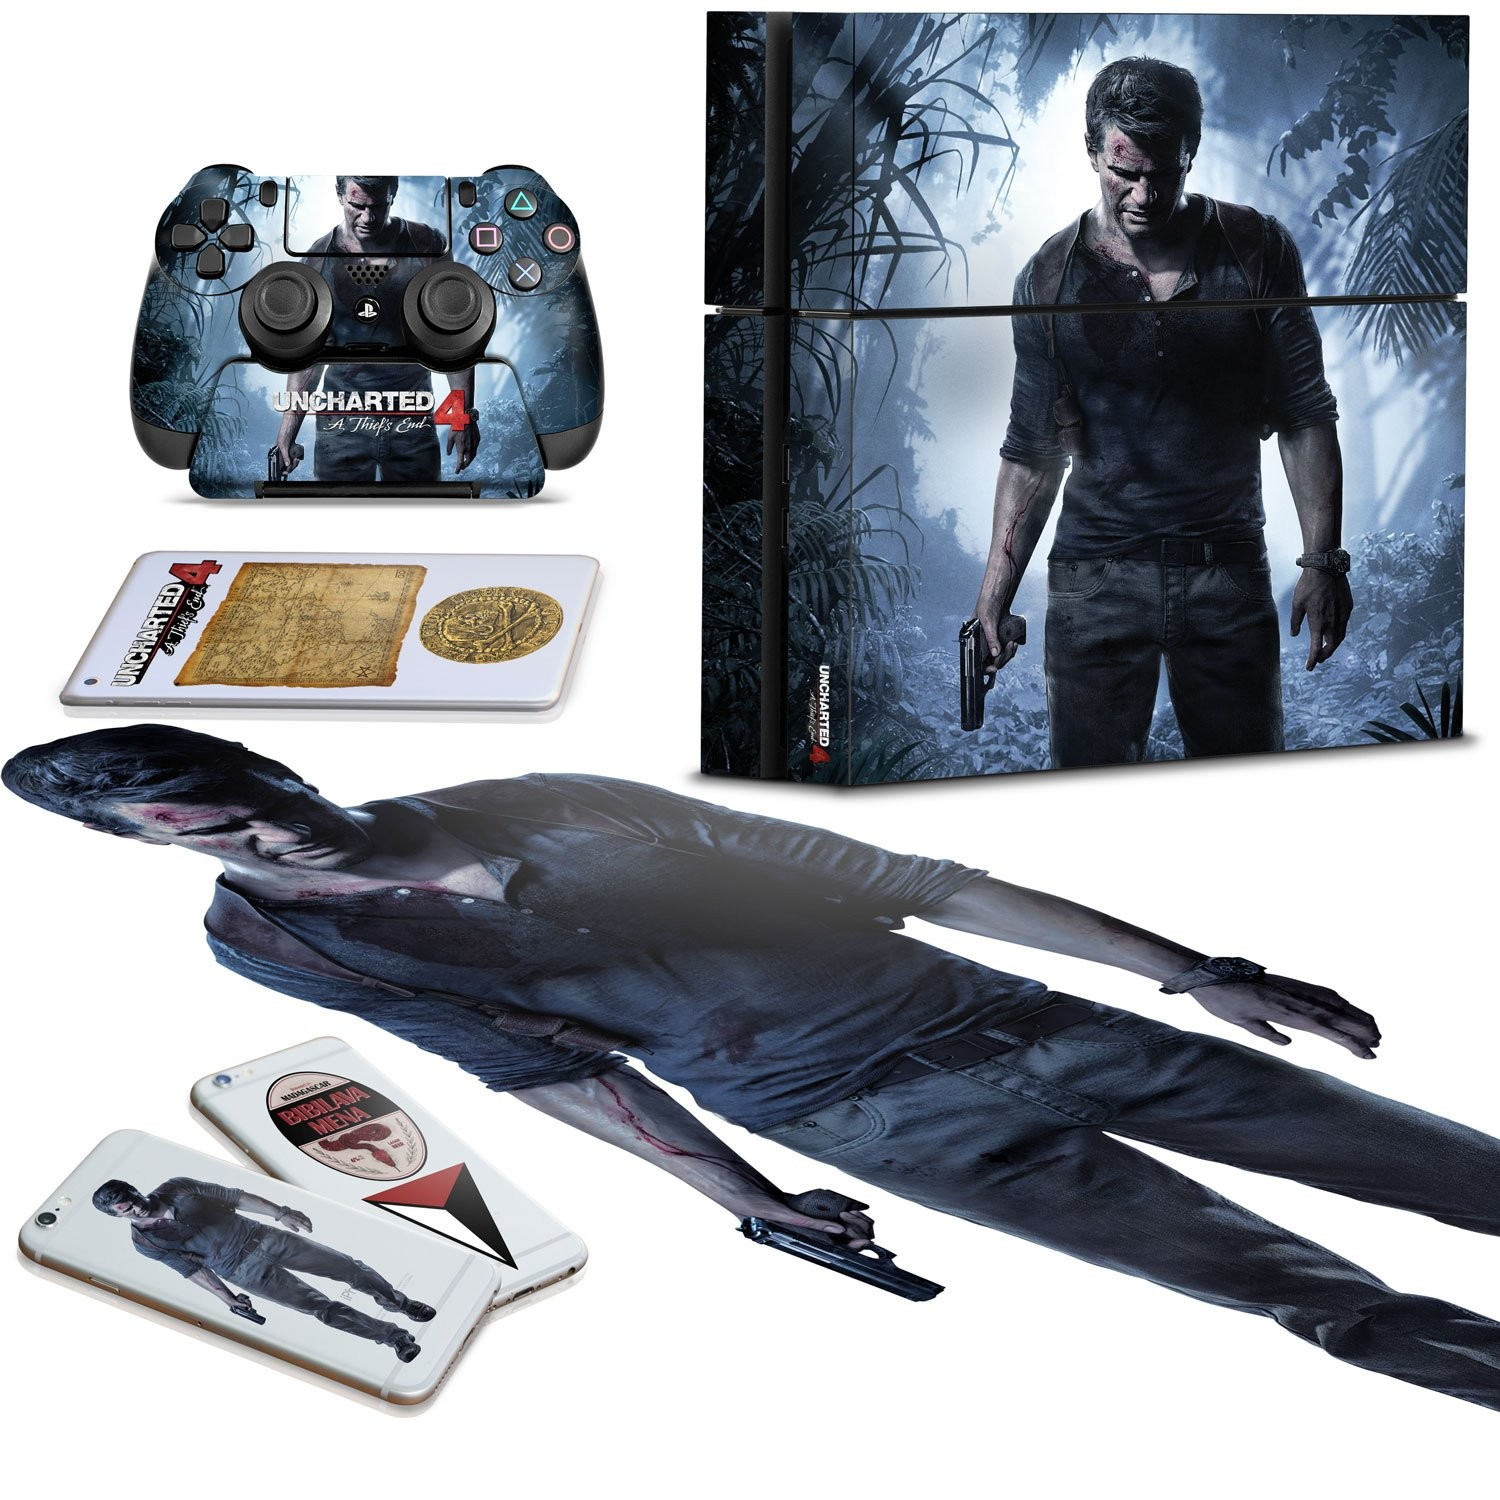 Uncharted 4 - Ultimate Gaming Skin Pack - Officially Licensed